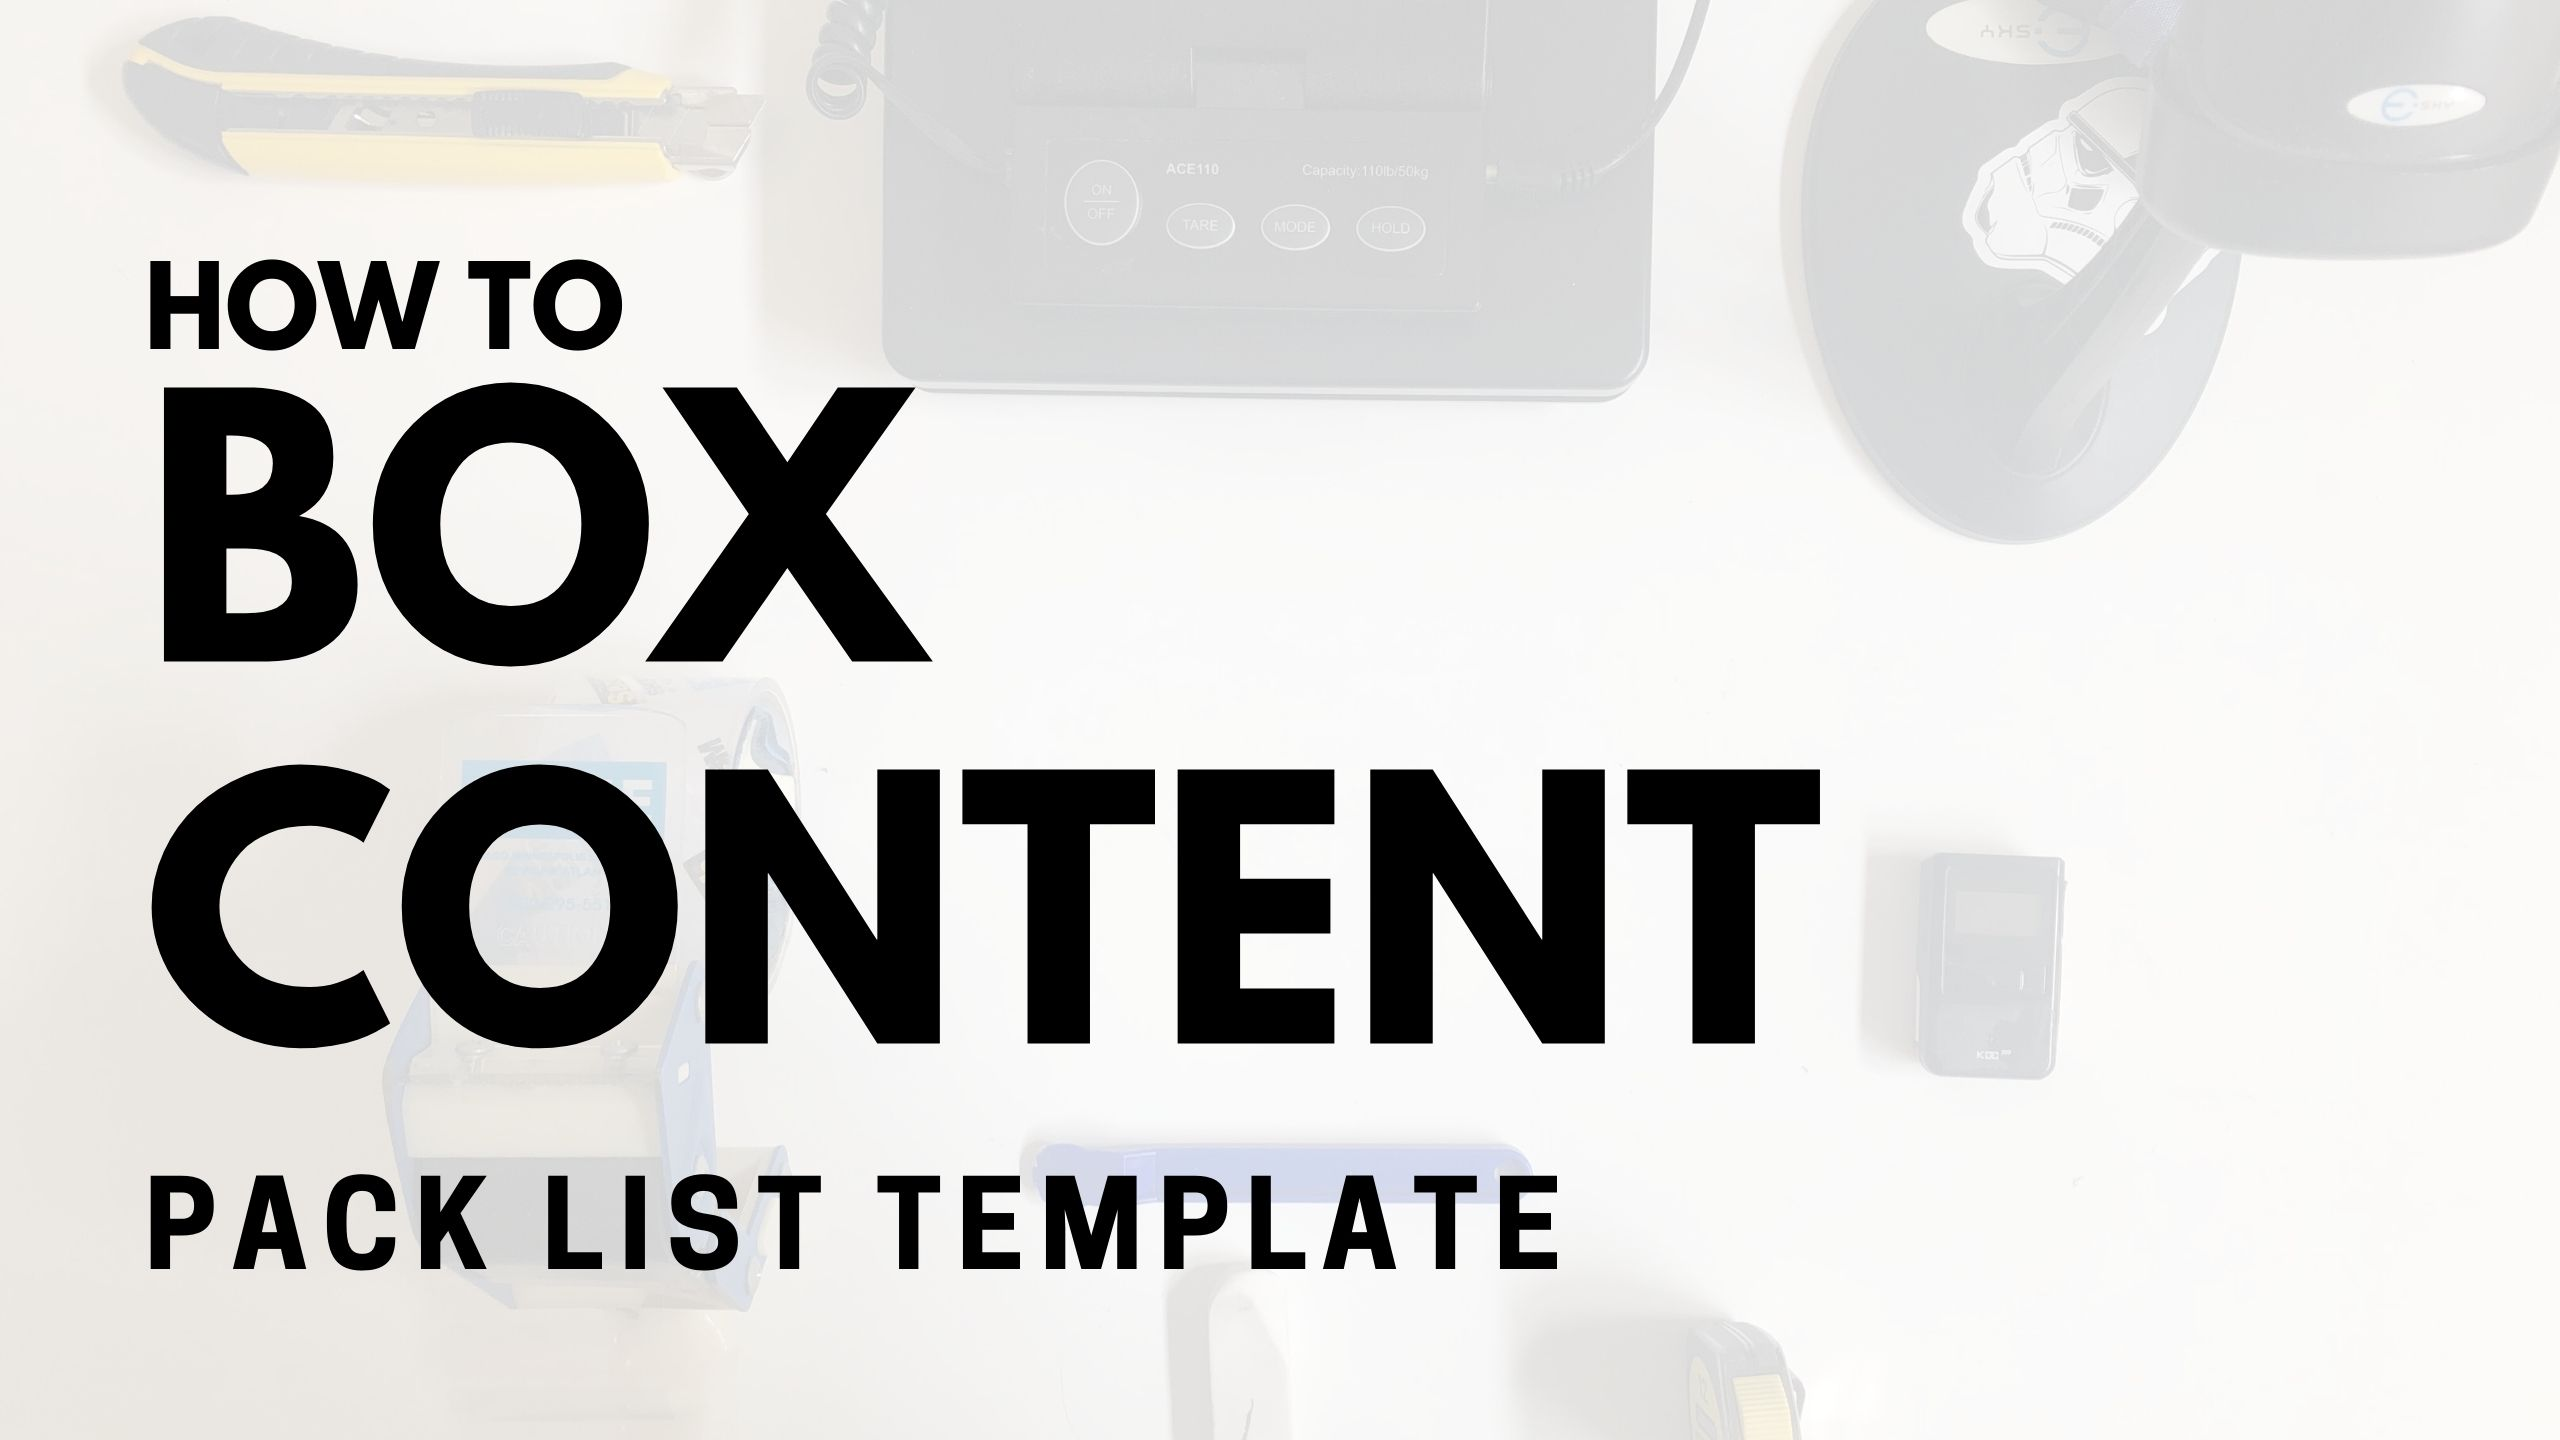 How to Provide Box Content for Amazon FBA